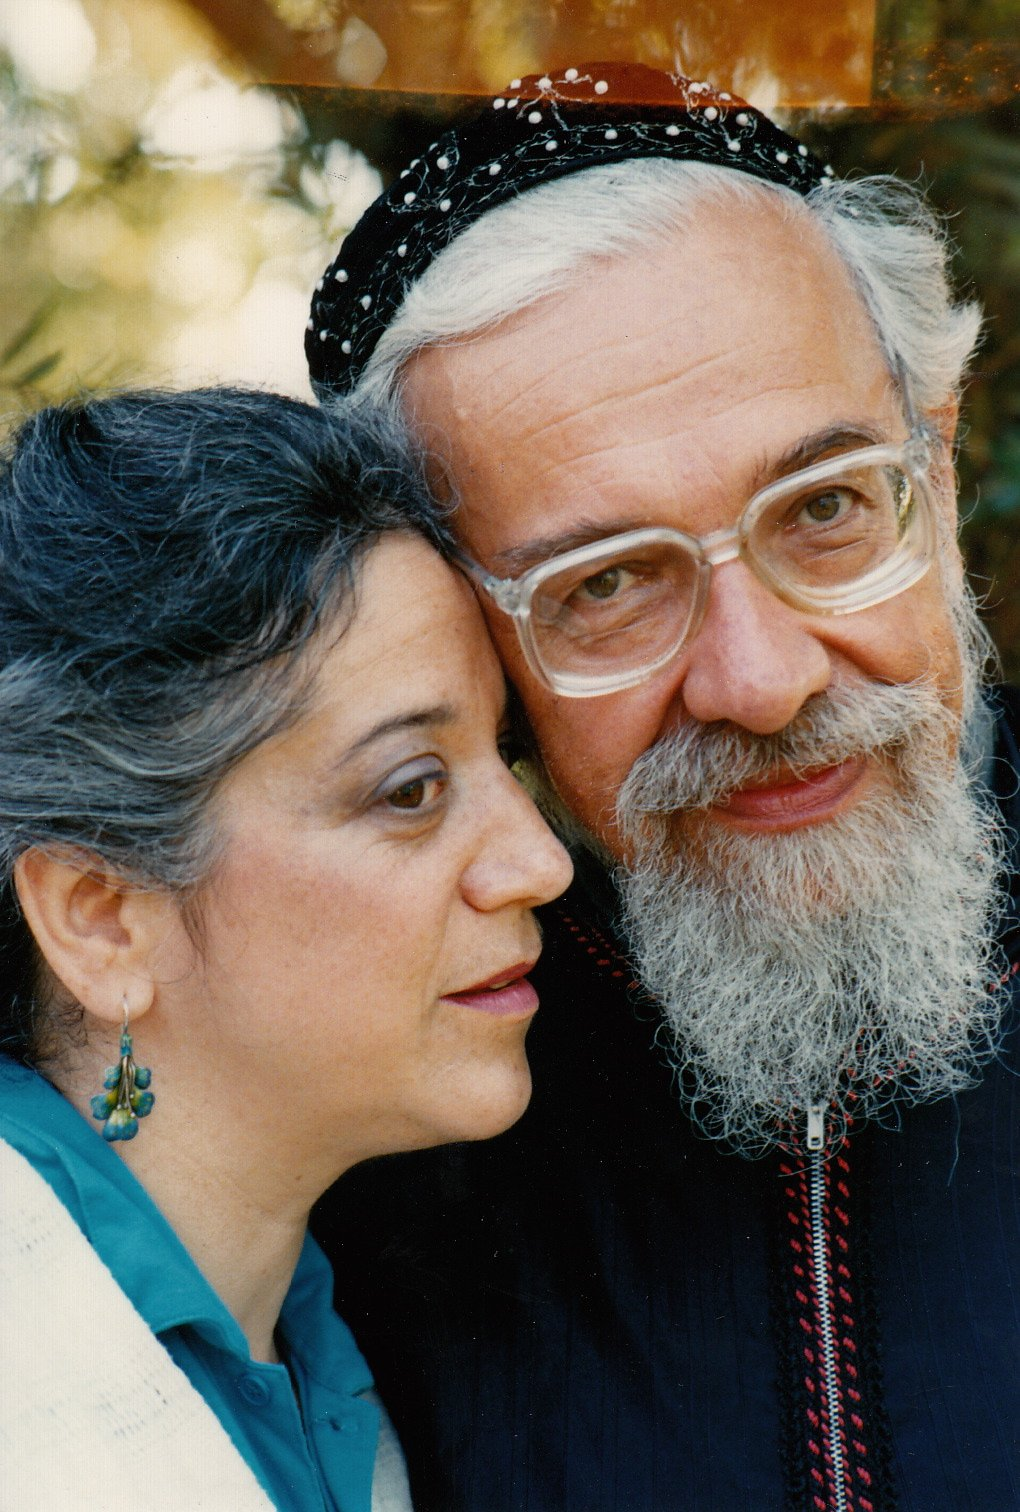 Rabbi Zalman Schachter-Shalomi (in blue robe with red stitching and pearl-embroidered kippah) with his partner, Eve Ilsen, early 1990s.